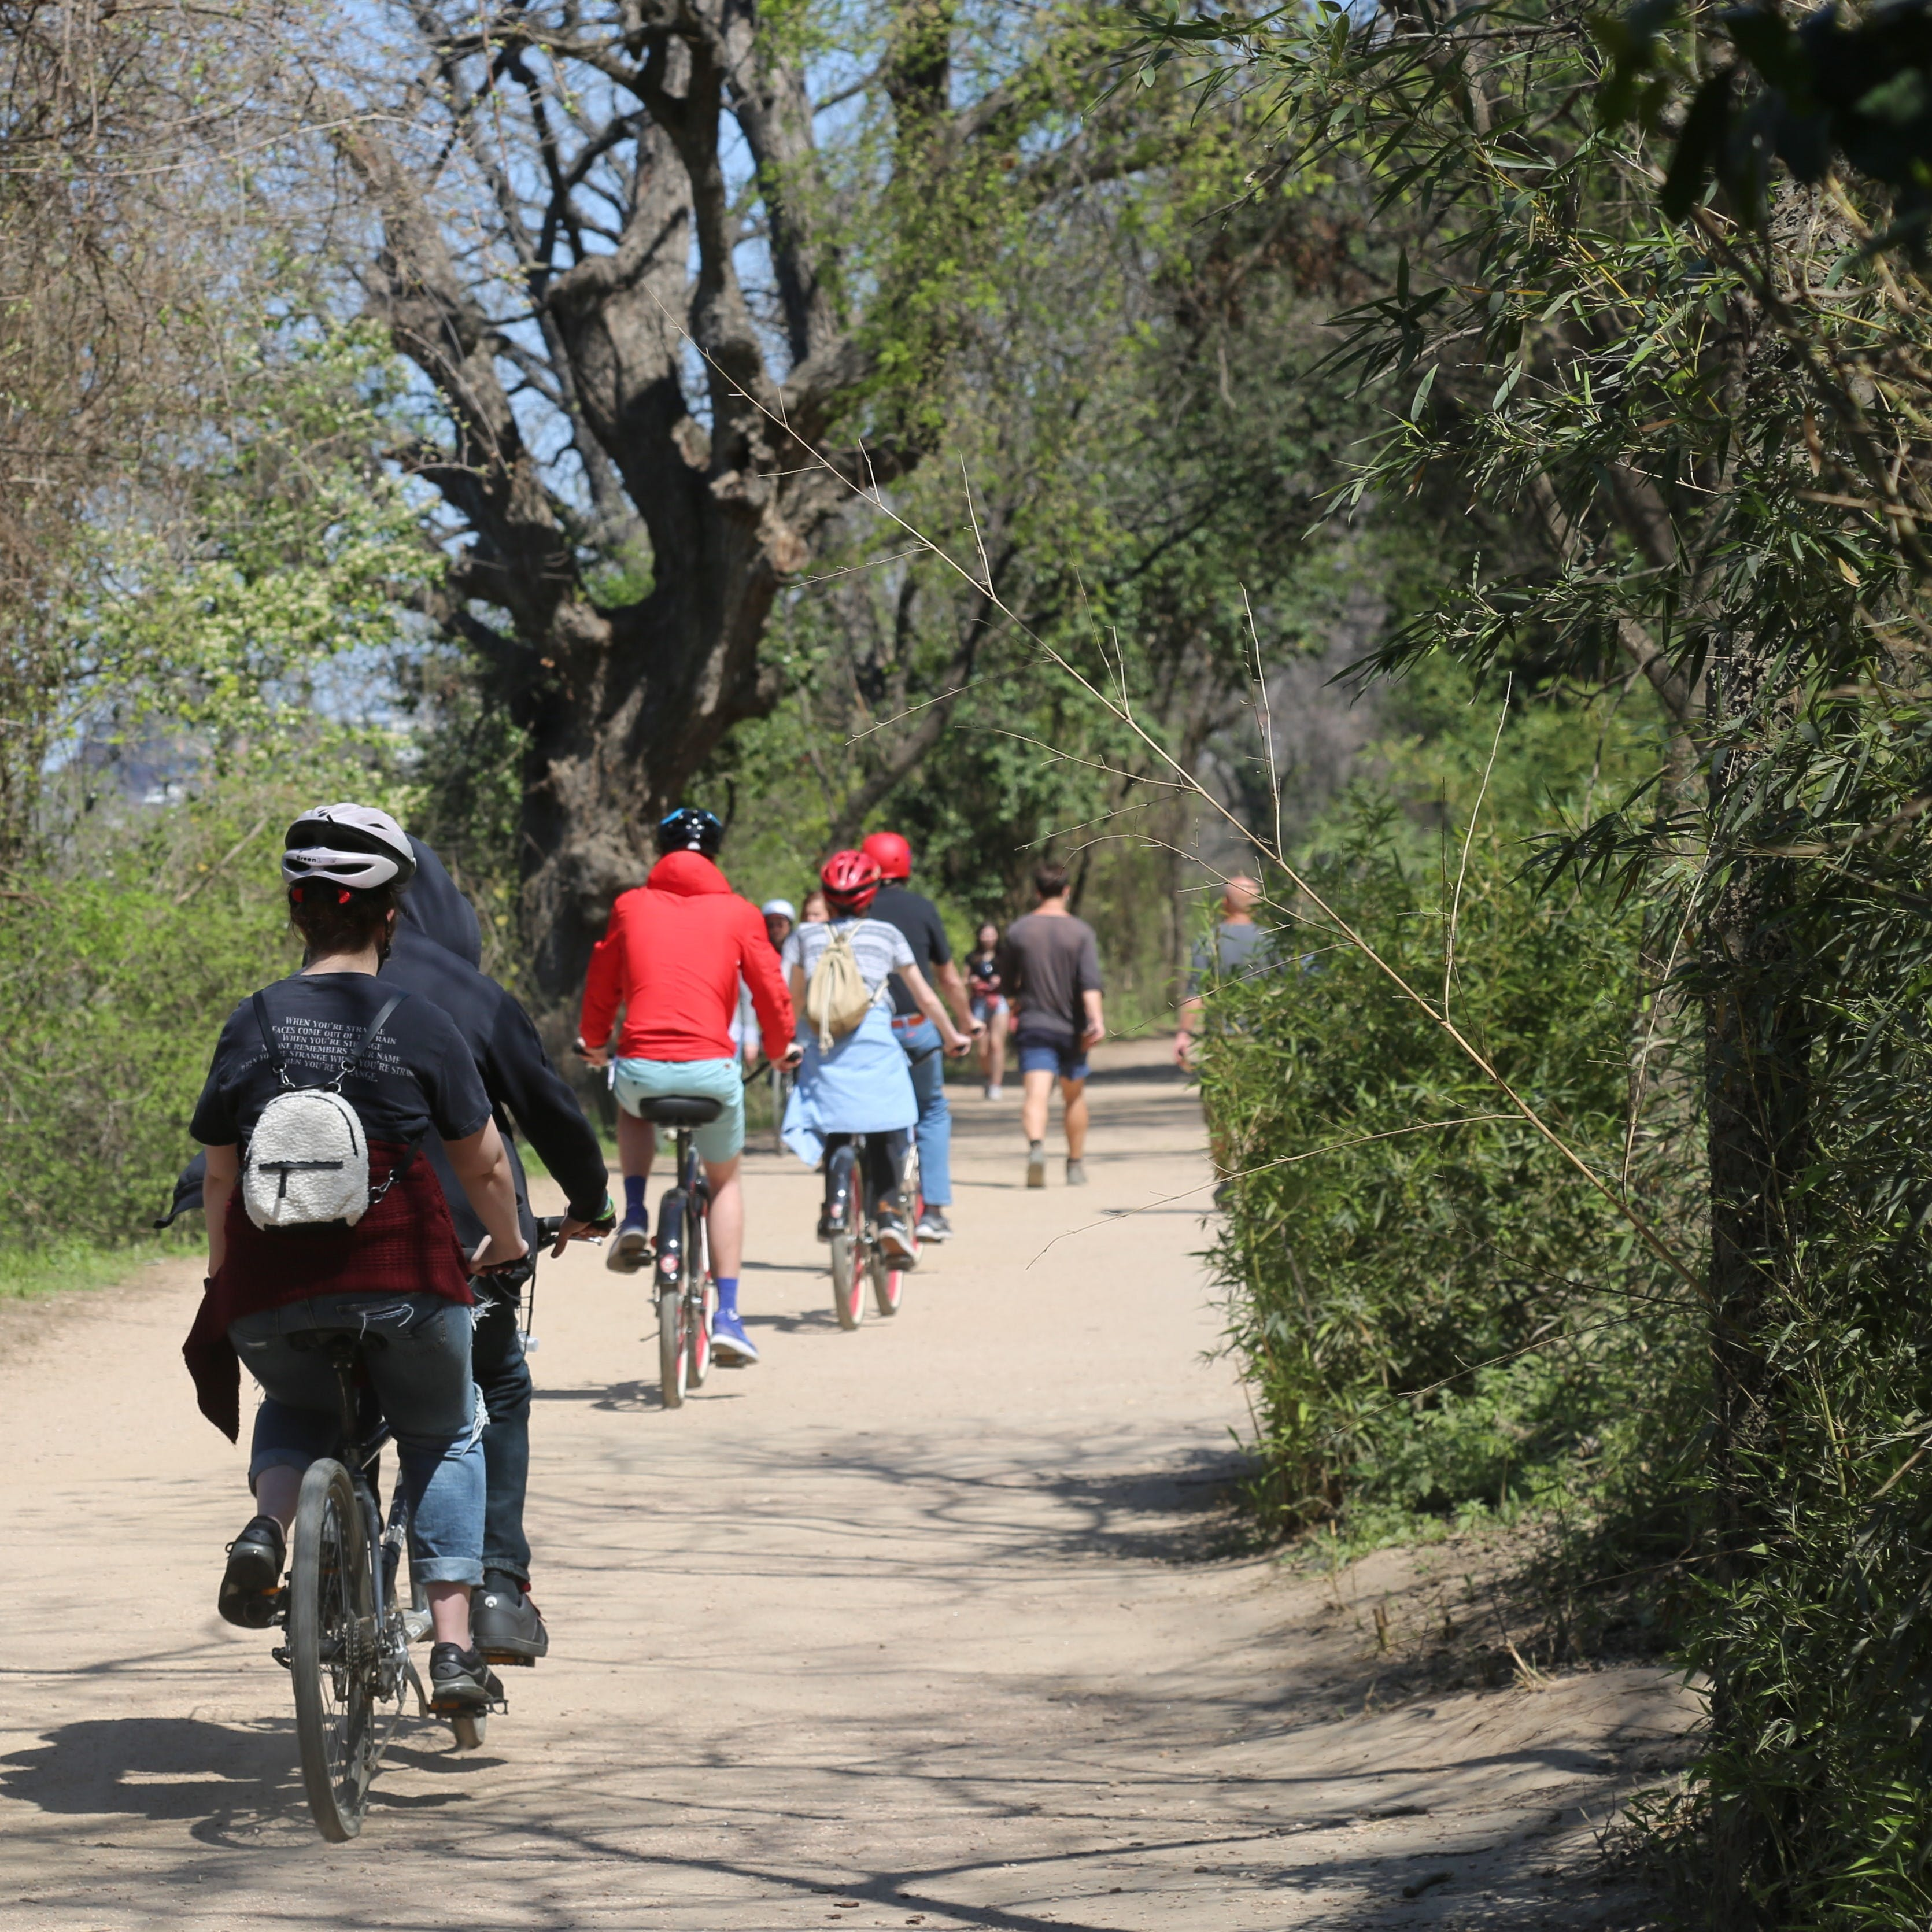 Butler Hike and Bike Trail at Lady Bird Lake. Motorized scooters will not be allowed on this trail.